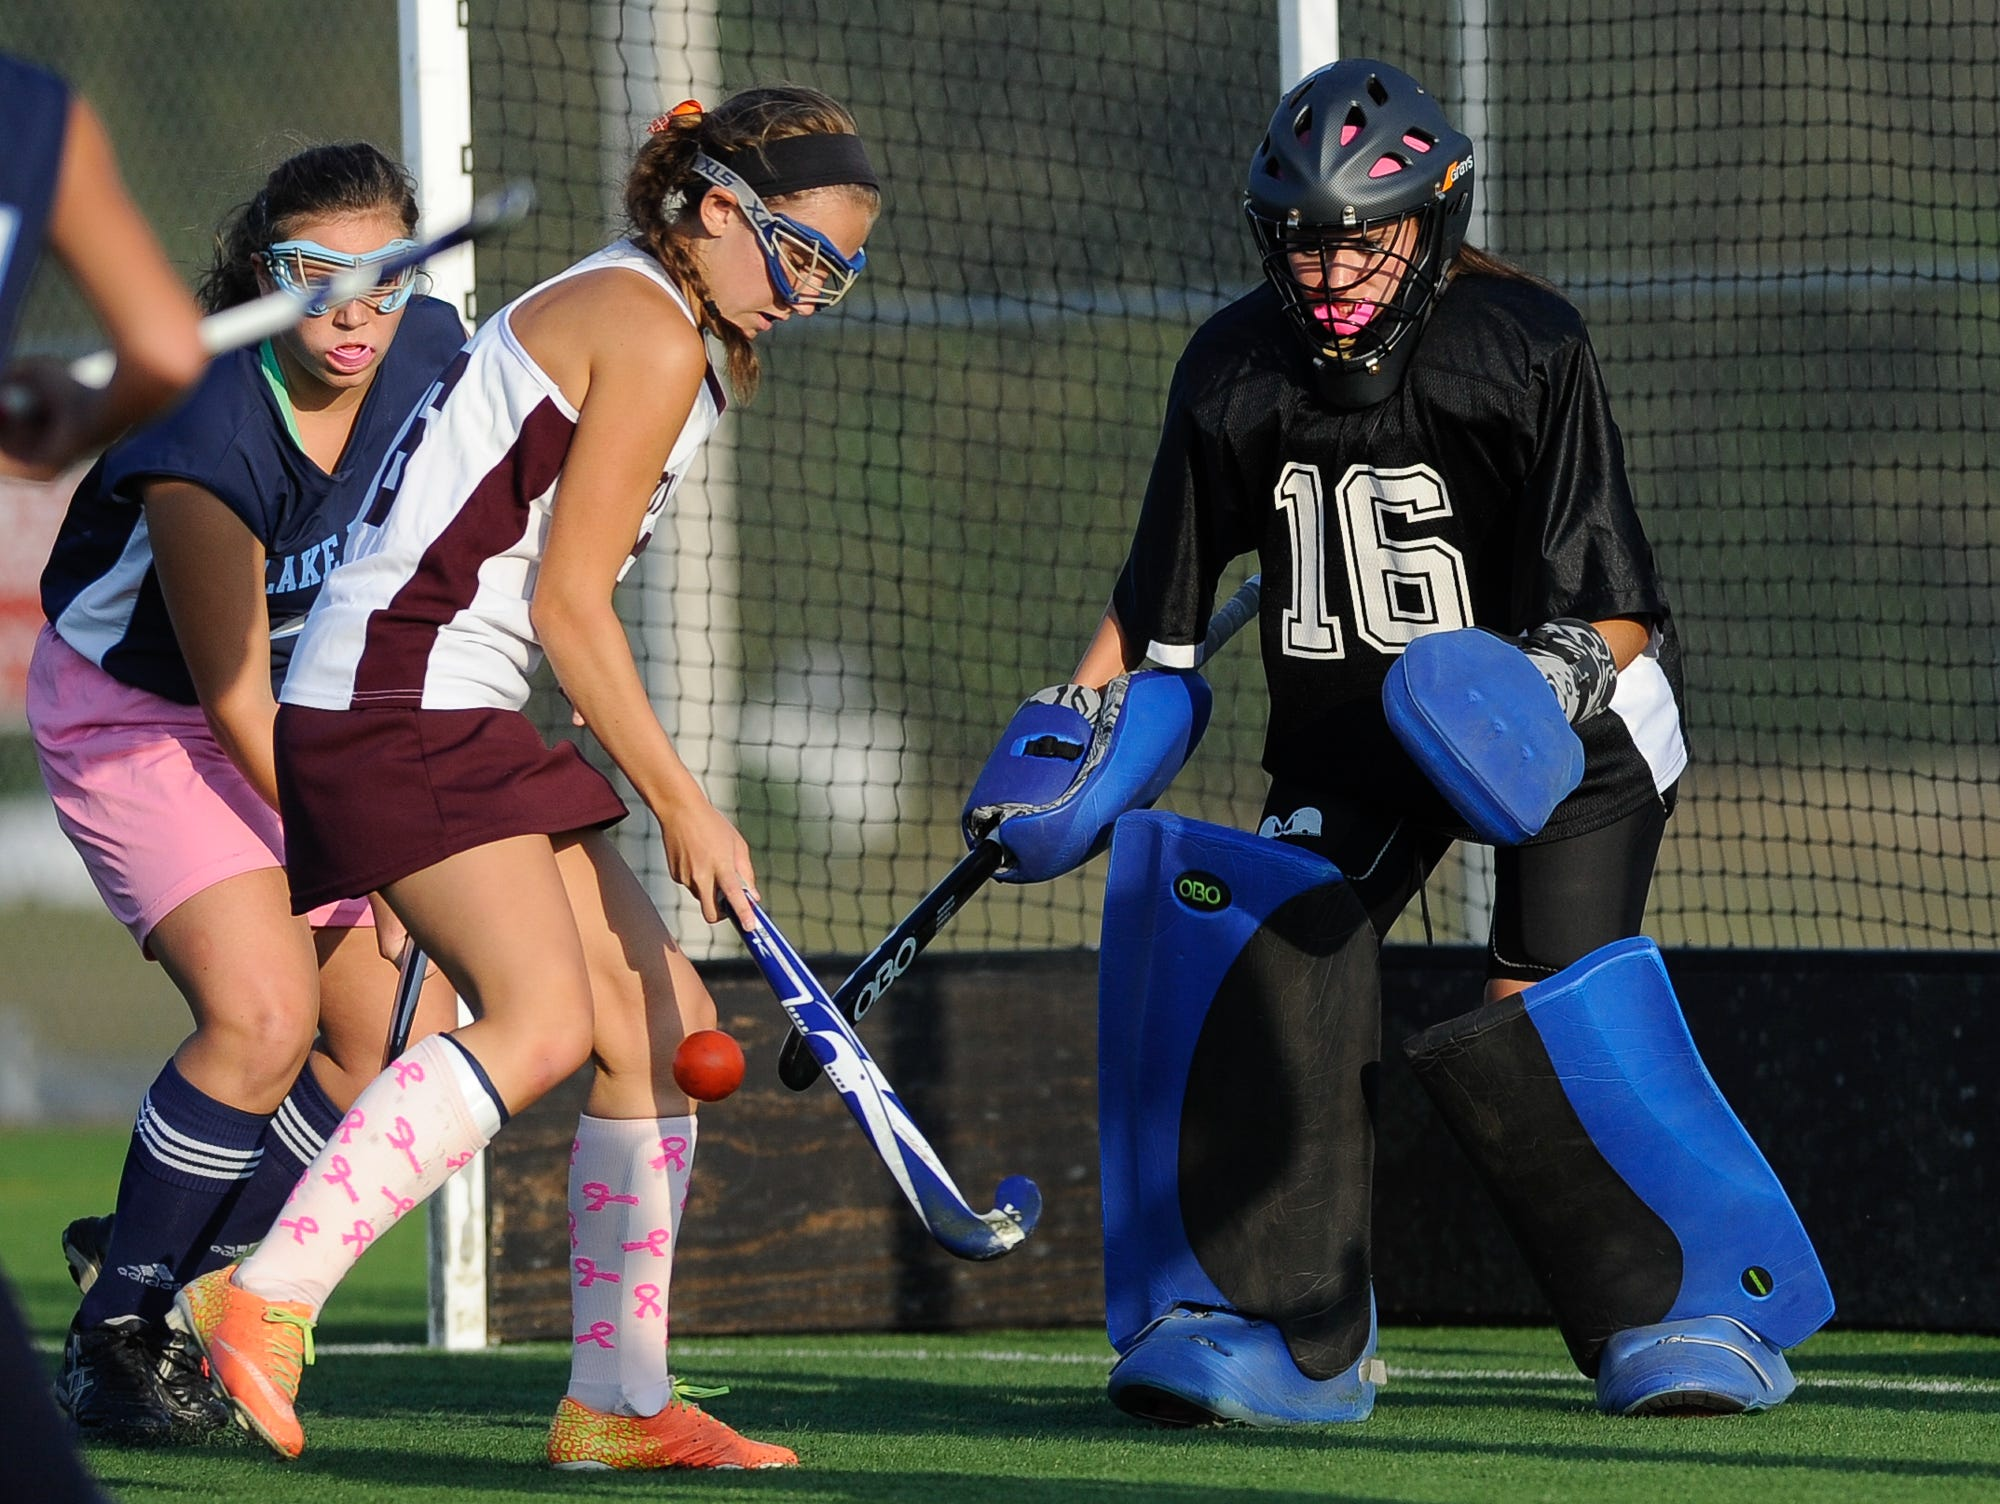 Lake Forest field hockey goalie Allison Bishop (No. 16) defends in their game against Milford.